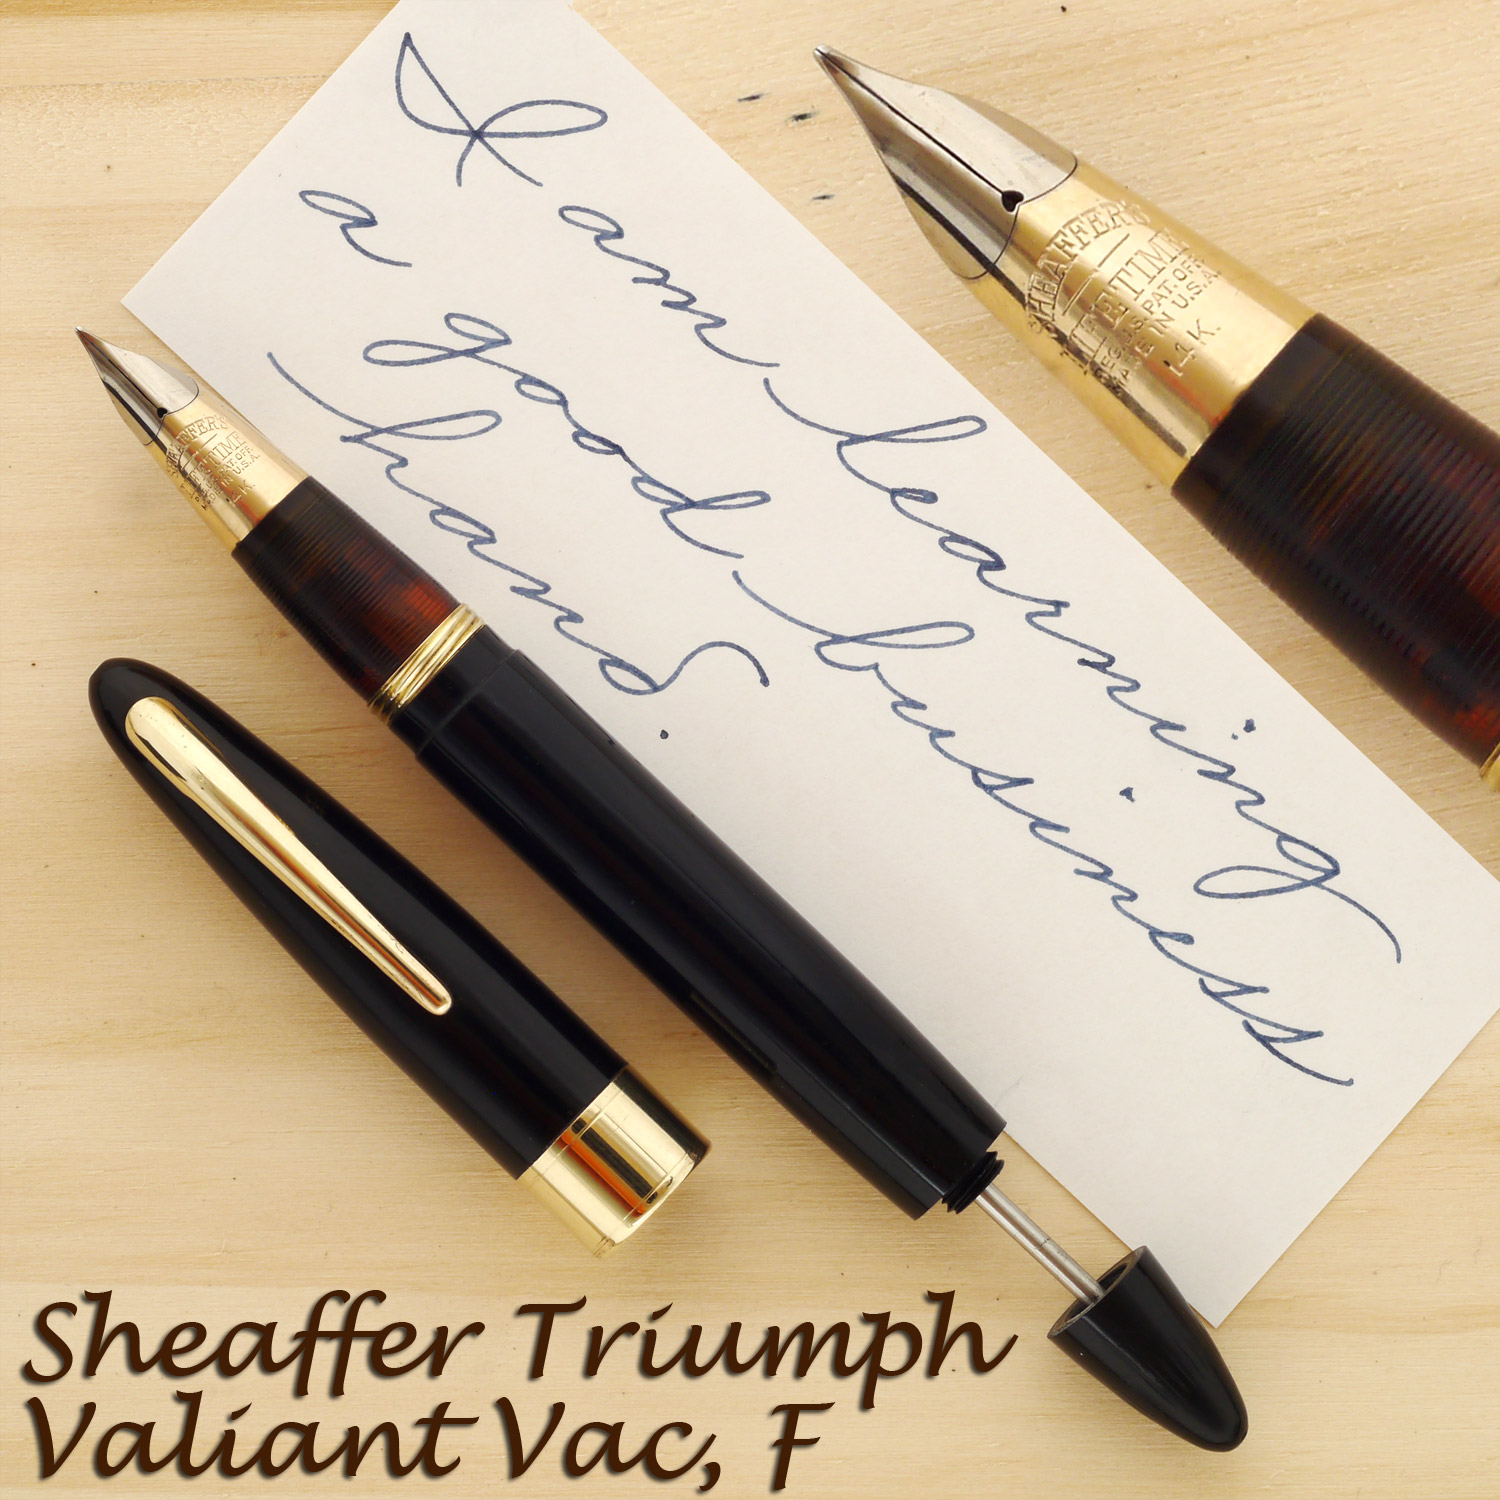 Sheaffer Triumph Valiant Vac 1250, F